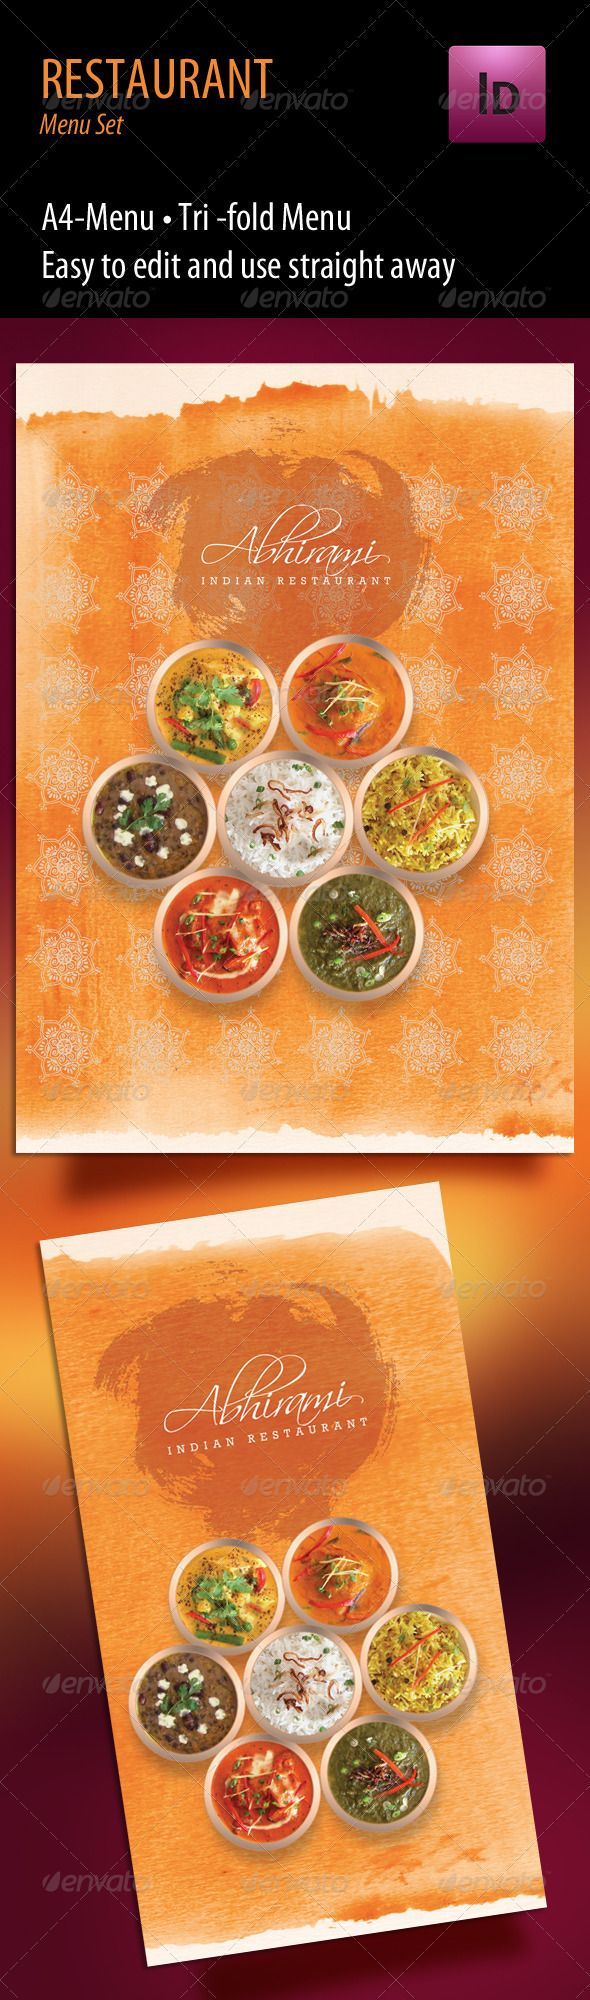 Indian Restaurant Menu set - A4 & Trifold - Food Menus Print Templates Download here : http://graphicriver.net/item/indian-restaurant-menu-set-a4-trifold/712154?s_rank=1494&ref=Al-fatih